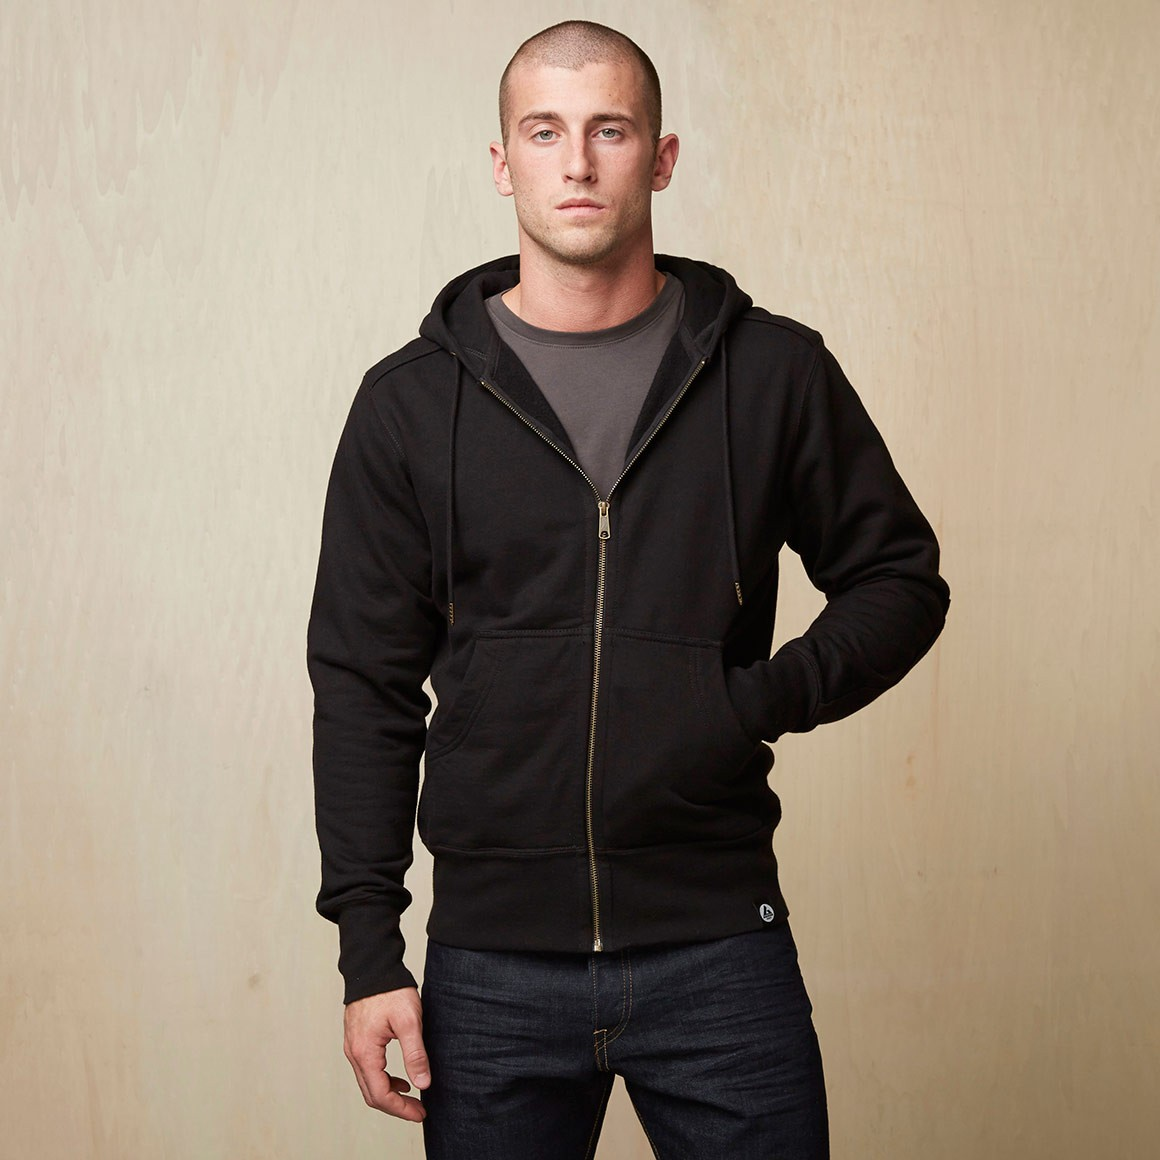 American Giant Hoodie Review Posted November 22, in EDC, Gear by Tony Sculimbrene with No Comments Whenever people tell me I need to like something, it has the opposite effect.